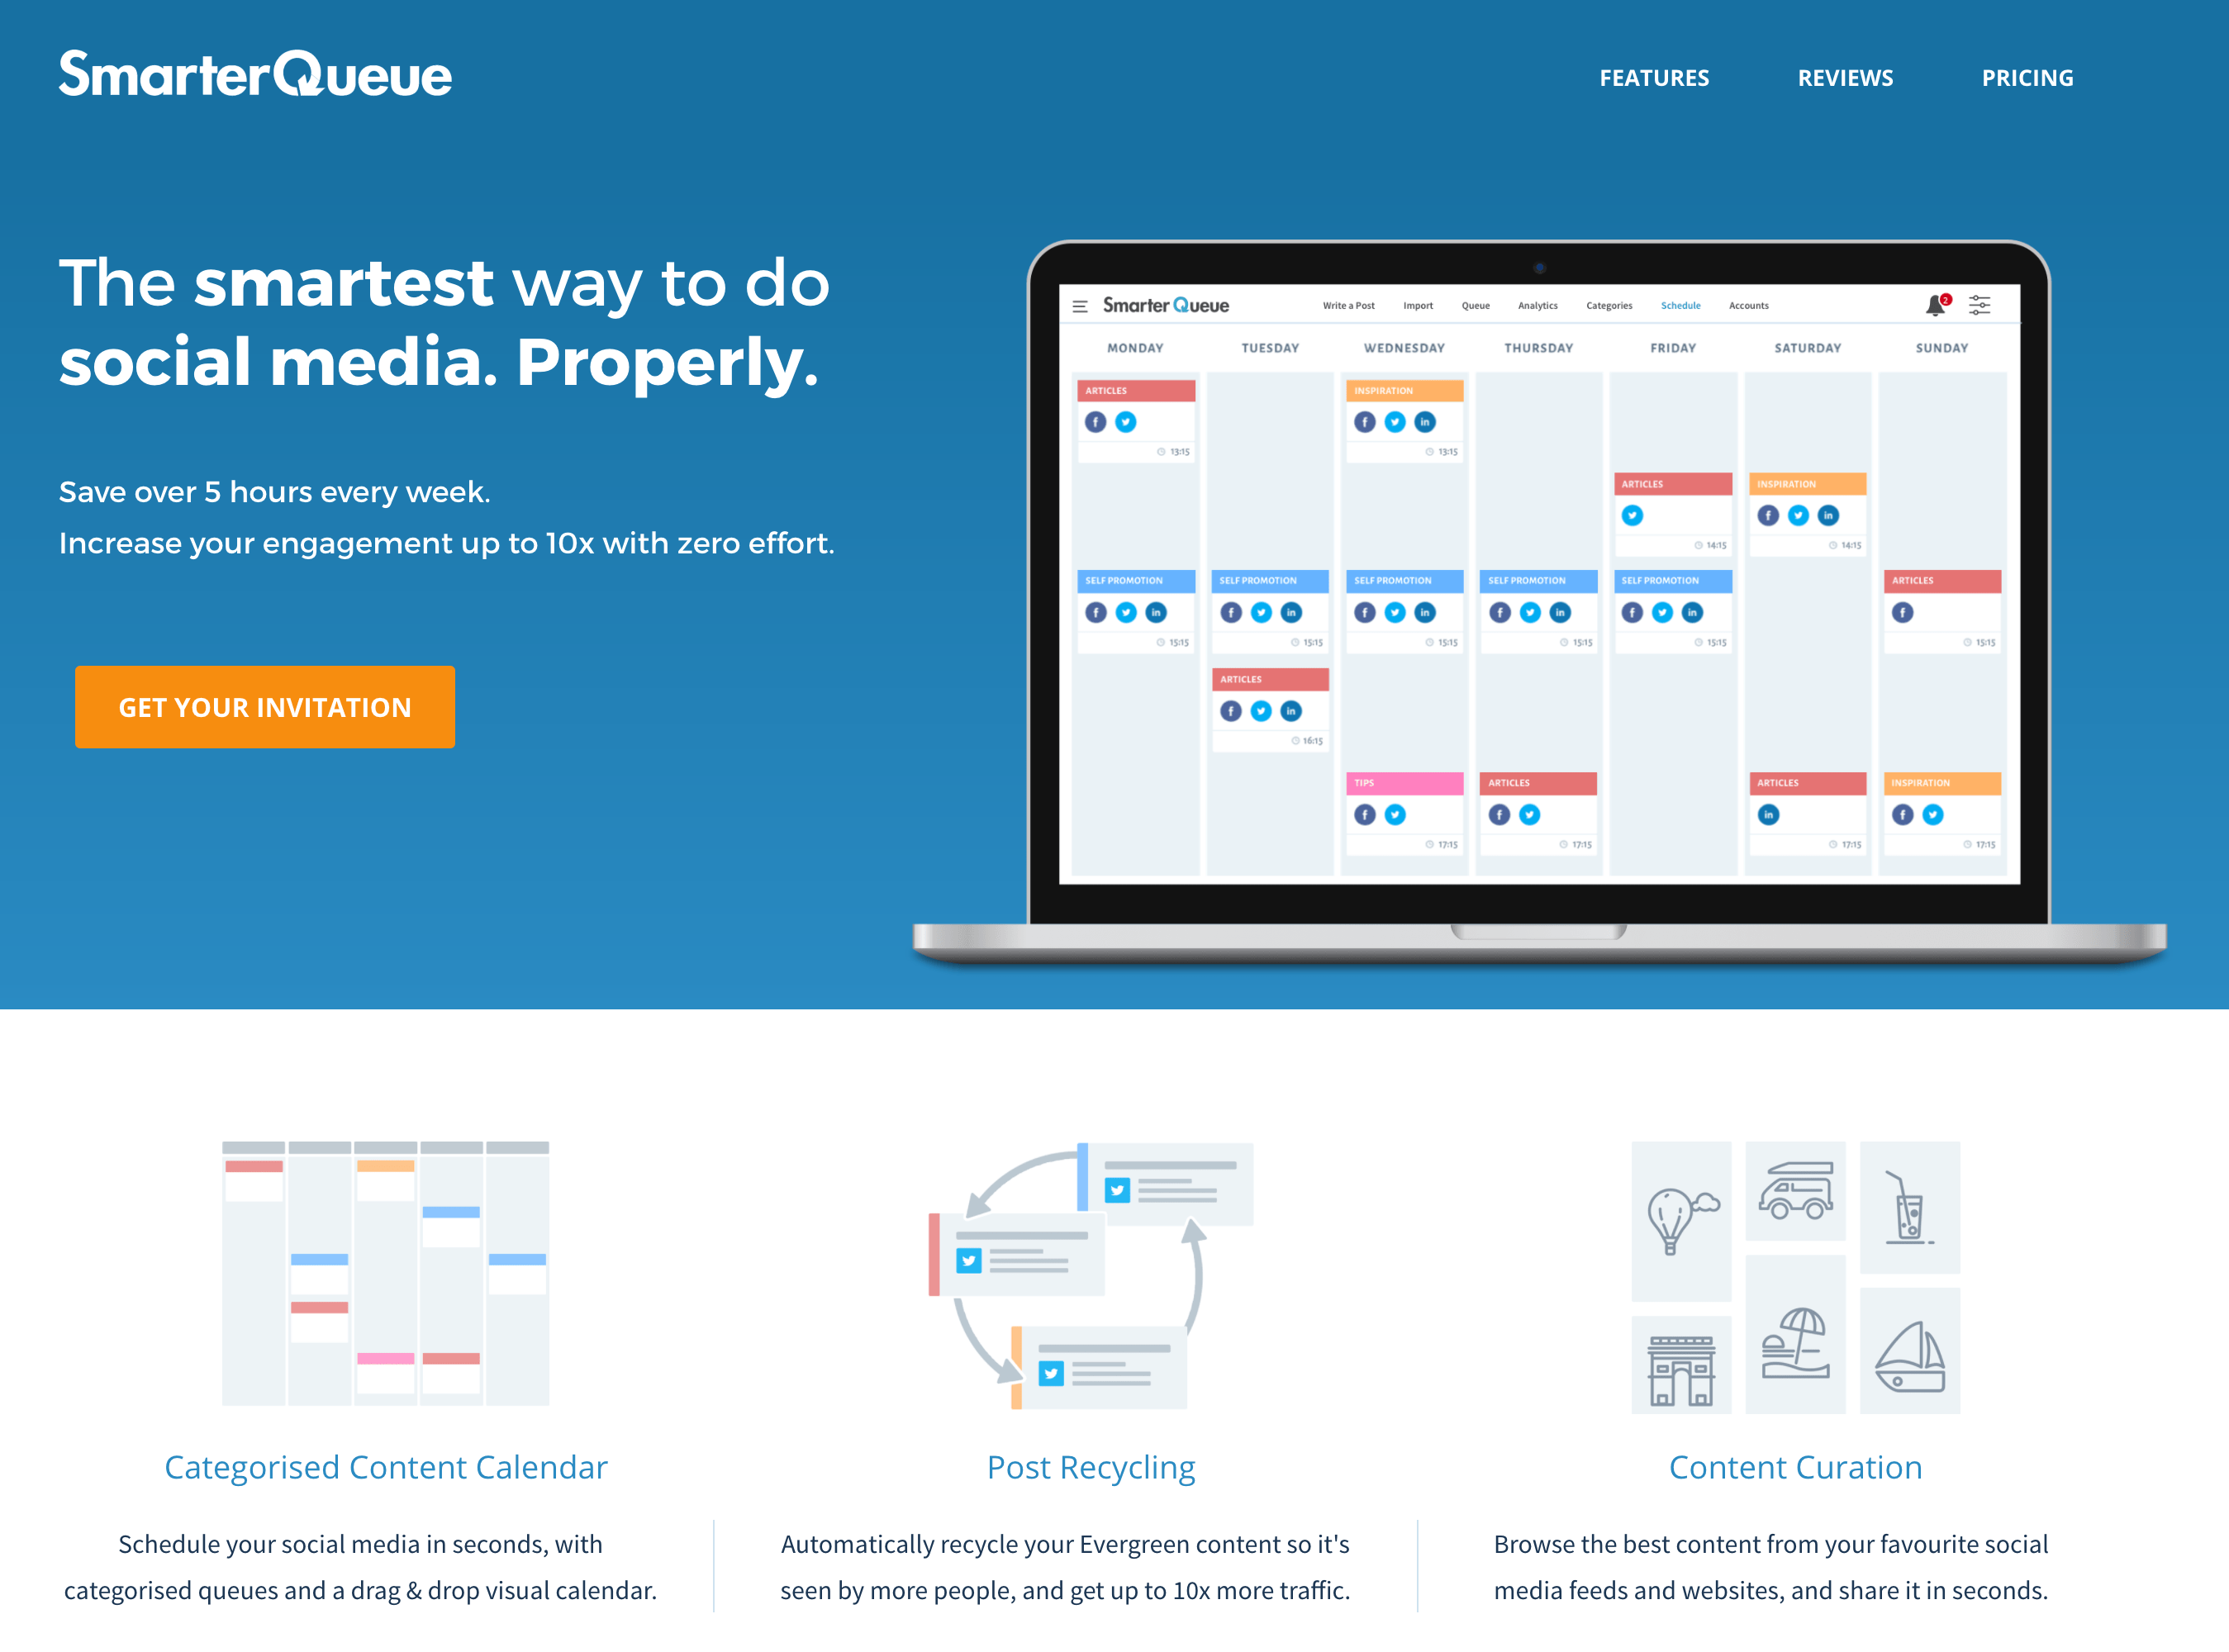 SmarterQueue beta landing page 2016 - the smartest way to do social media. properly